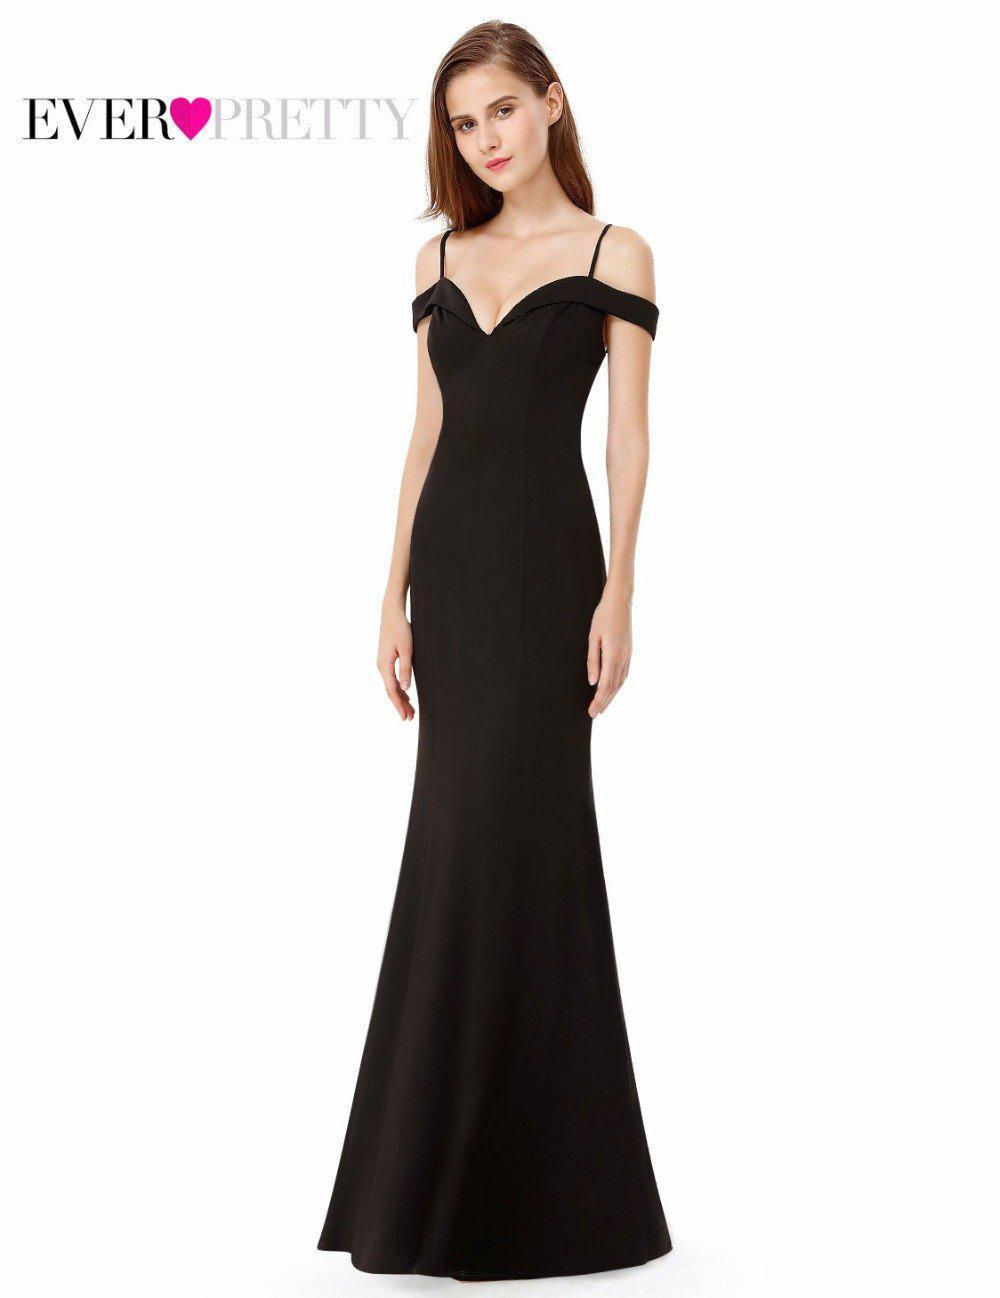 Prom Dresses Sexy V-neck Women's Elegant Off-the-shoulder Sleeveless Long Prom Party Dresses Ever Pretty EP07017-Dress-SheSimplyShops